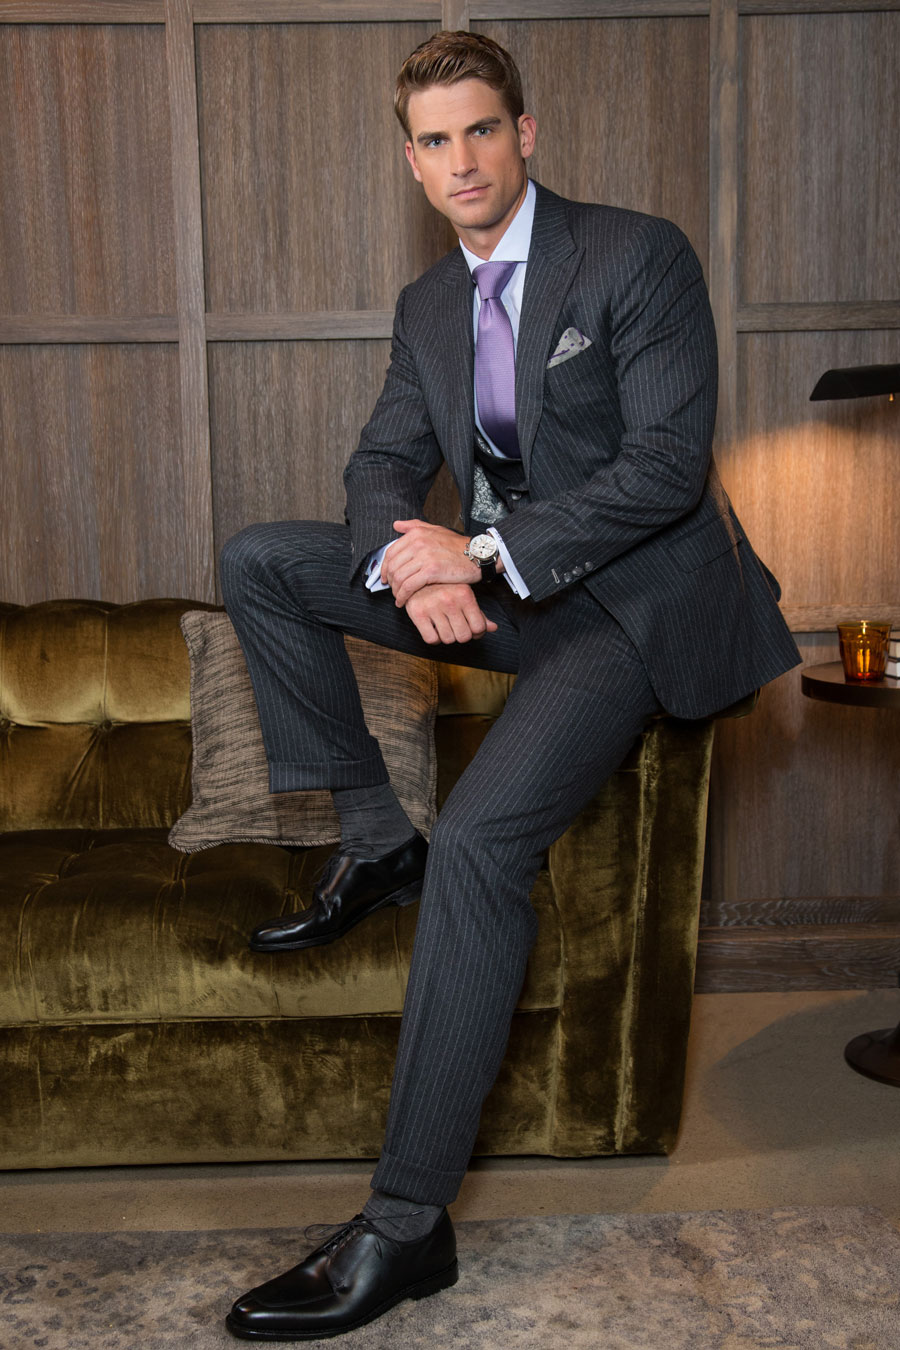 Pinstripe-Slacks-Cuffs-Custom-Balani-Charcoal-Suit-Lavender-Tie-Velvet-Couch-Wood-wall-Chicago-900.jpg